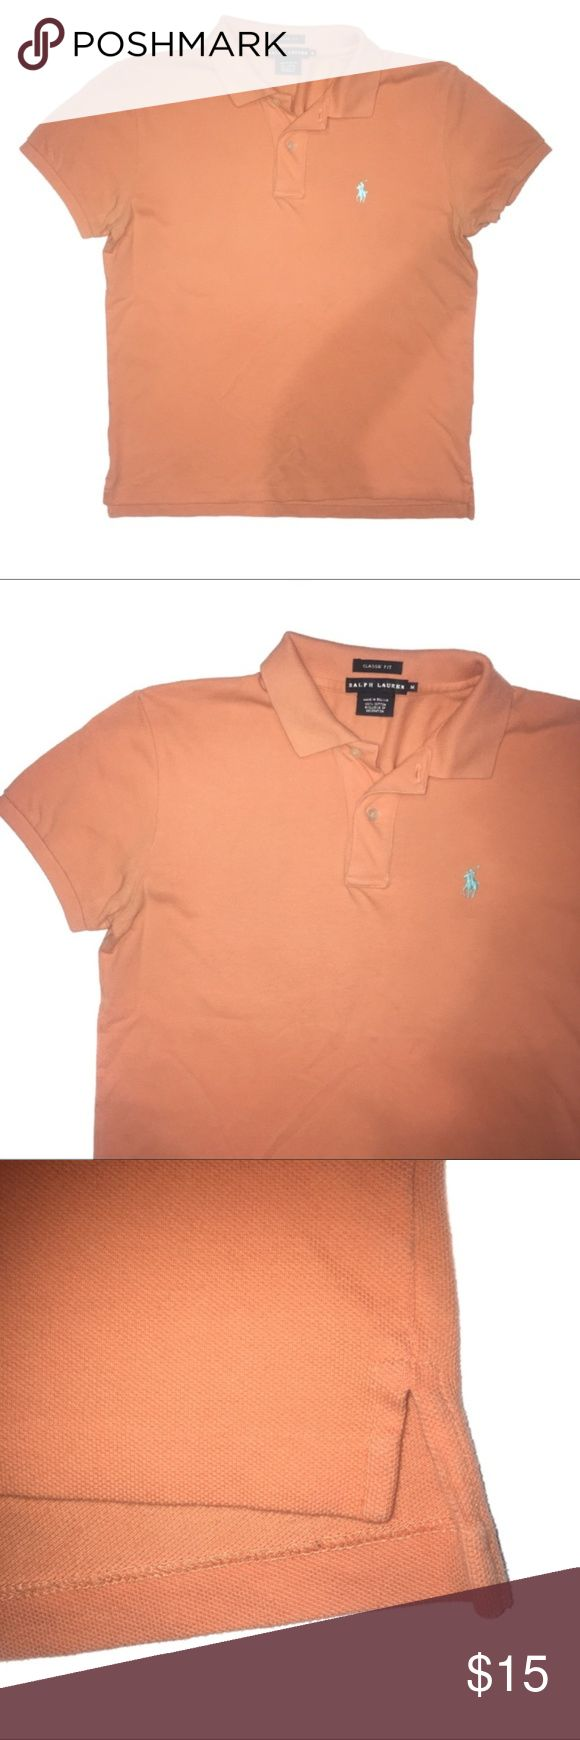 "Ralph Lauren Classic Fit Orange Polo Shirt Ralph Lauren classic fit orange polo shirt. Size medium. Orange with blue emblem. Has ribbed cuffs and collar. Slits up the sides. Slight discolor on armpits. 100% cotton. 38"" chest. 25.5"" length. Ralph Lauren Black Label Shirts Polos"